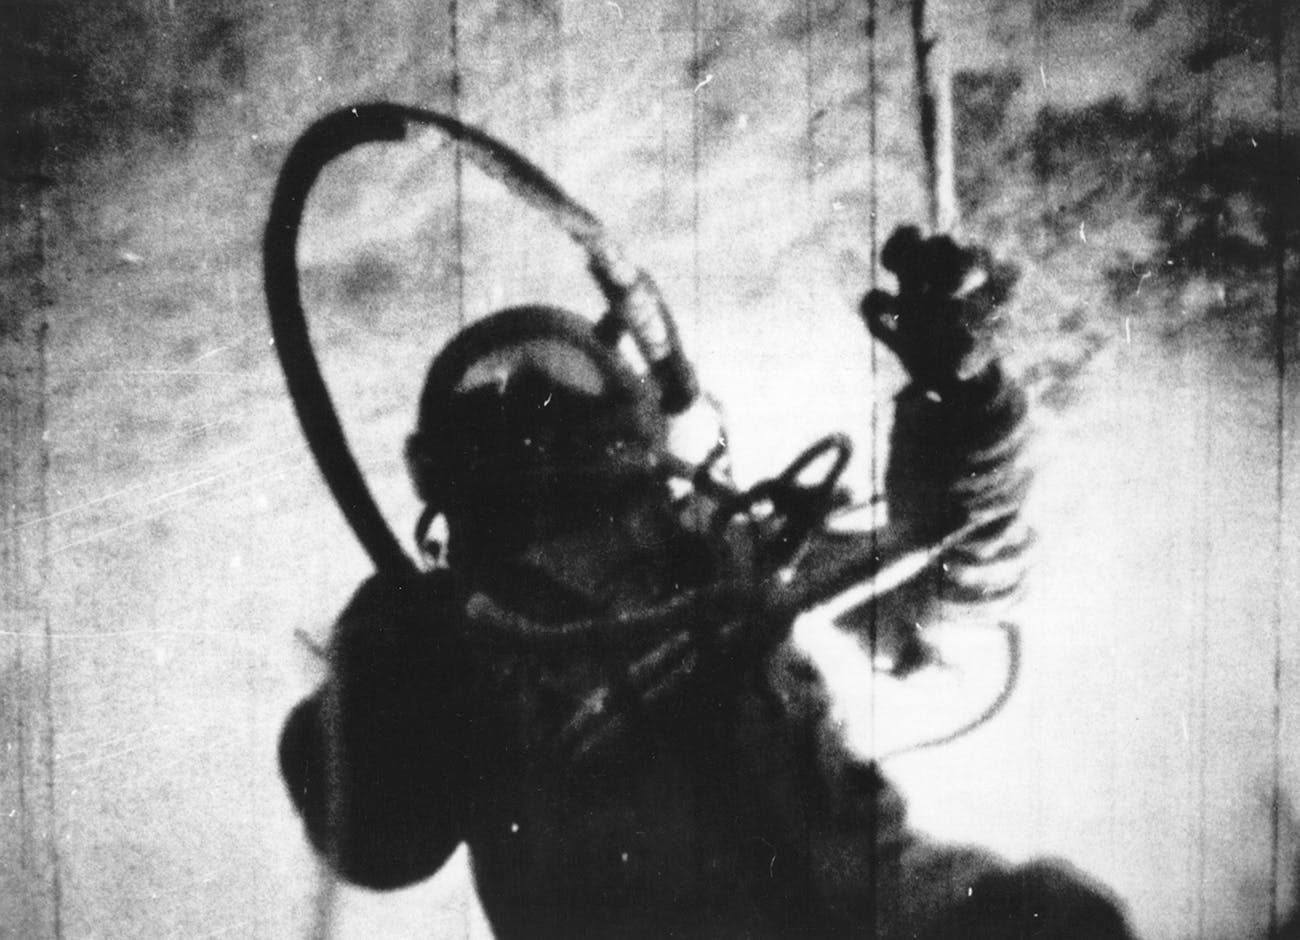 18th March 1965: Russian astronaut Alexei Leonov becomes the first man to walk in space on March 18, 1965.